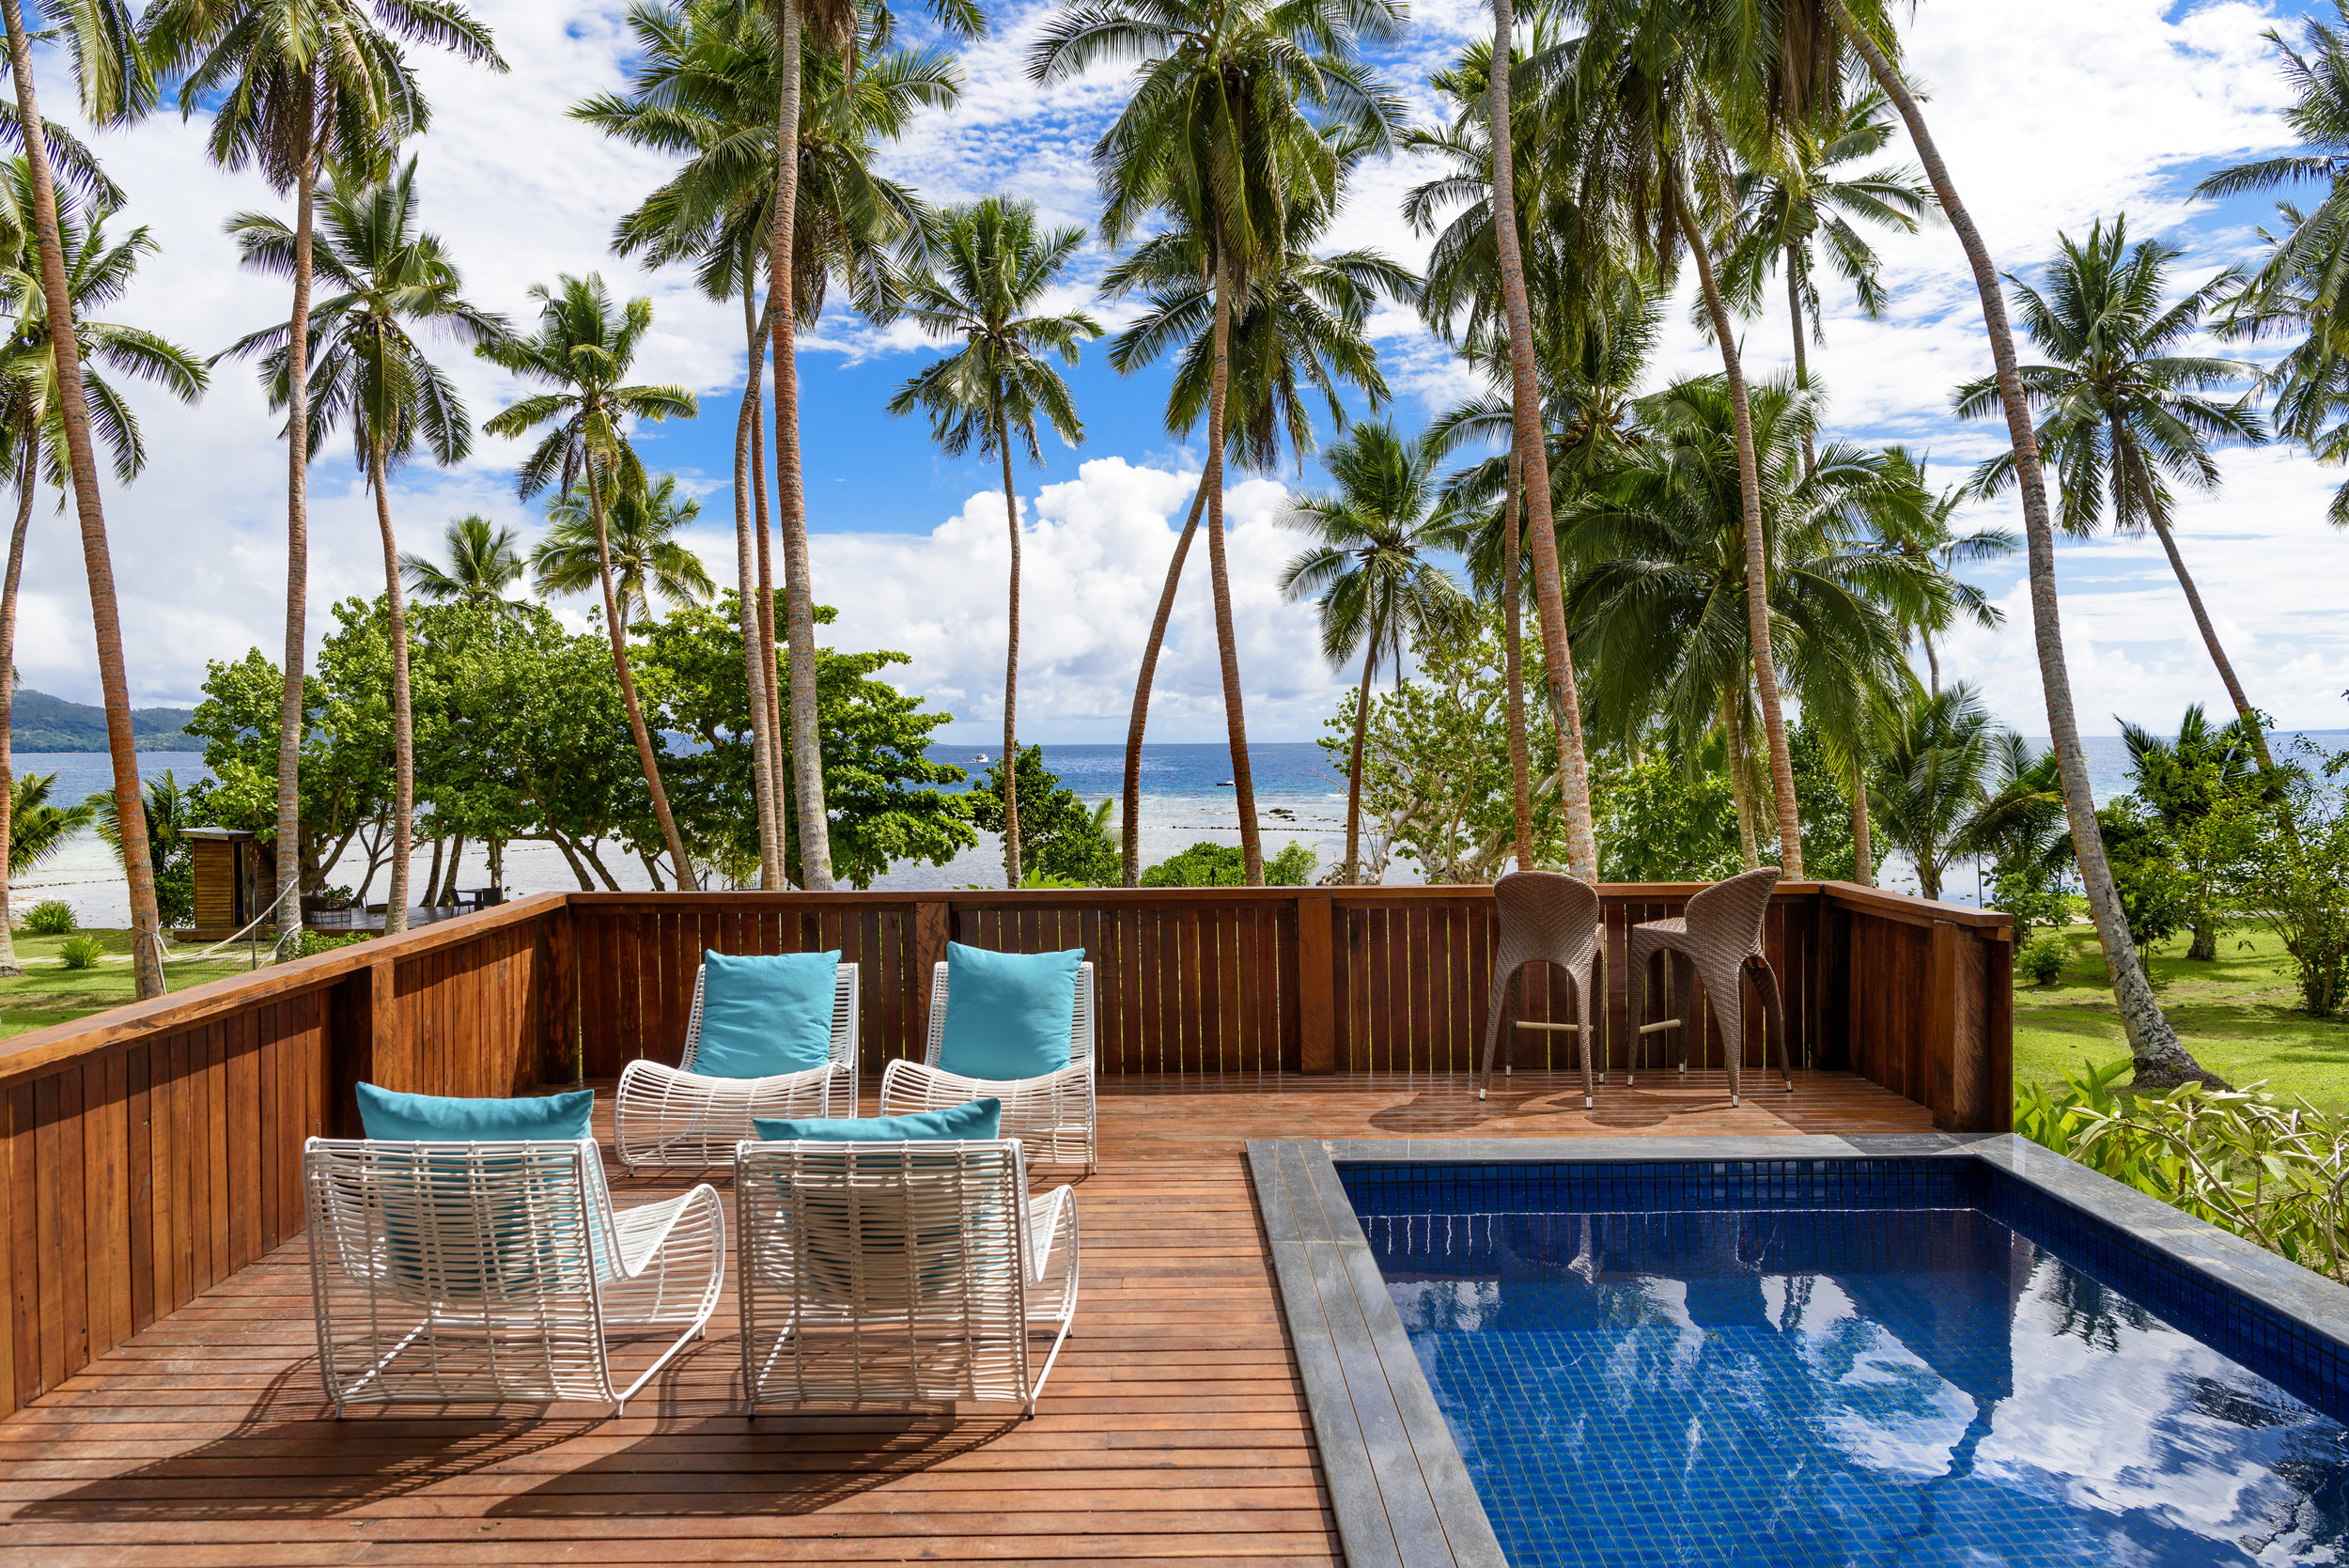 Fiji Resort Family Accommodation up to 5 persons - The Remote Resort6.jpg